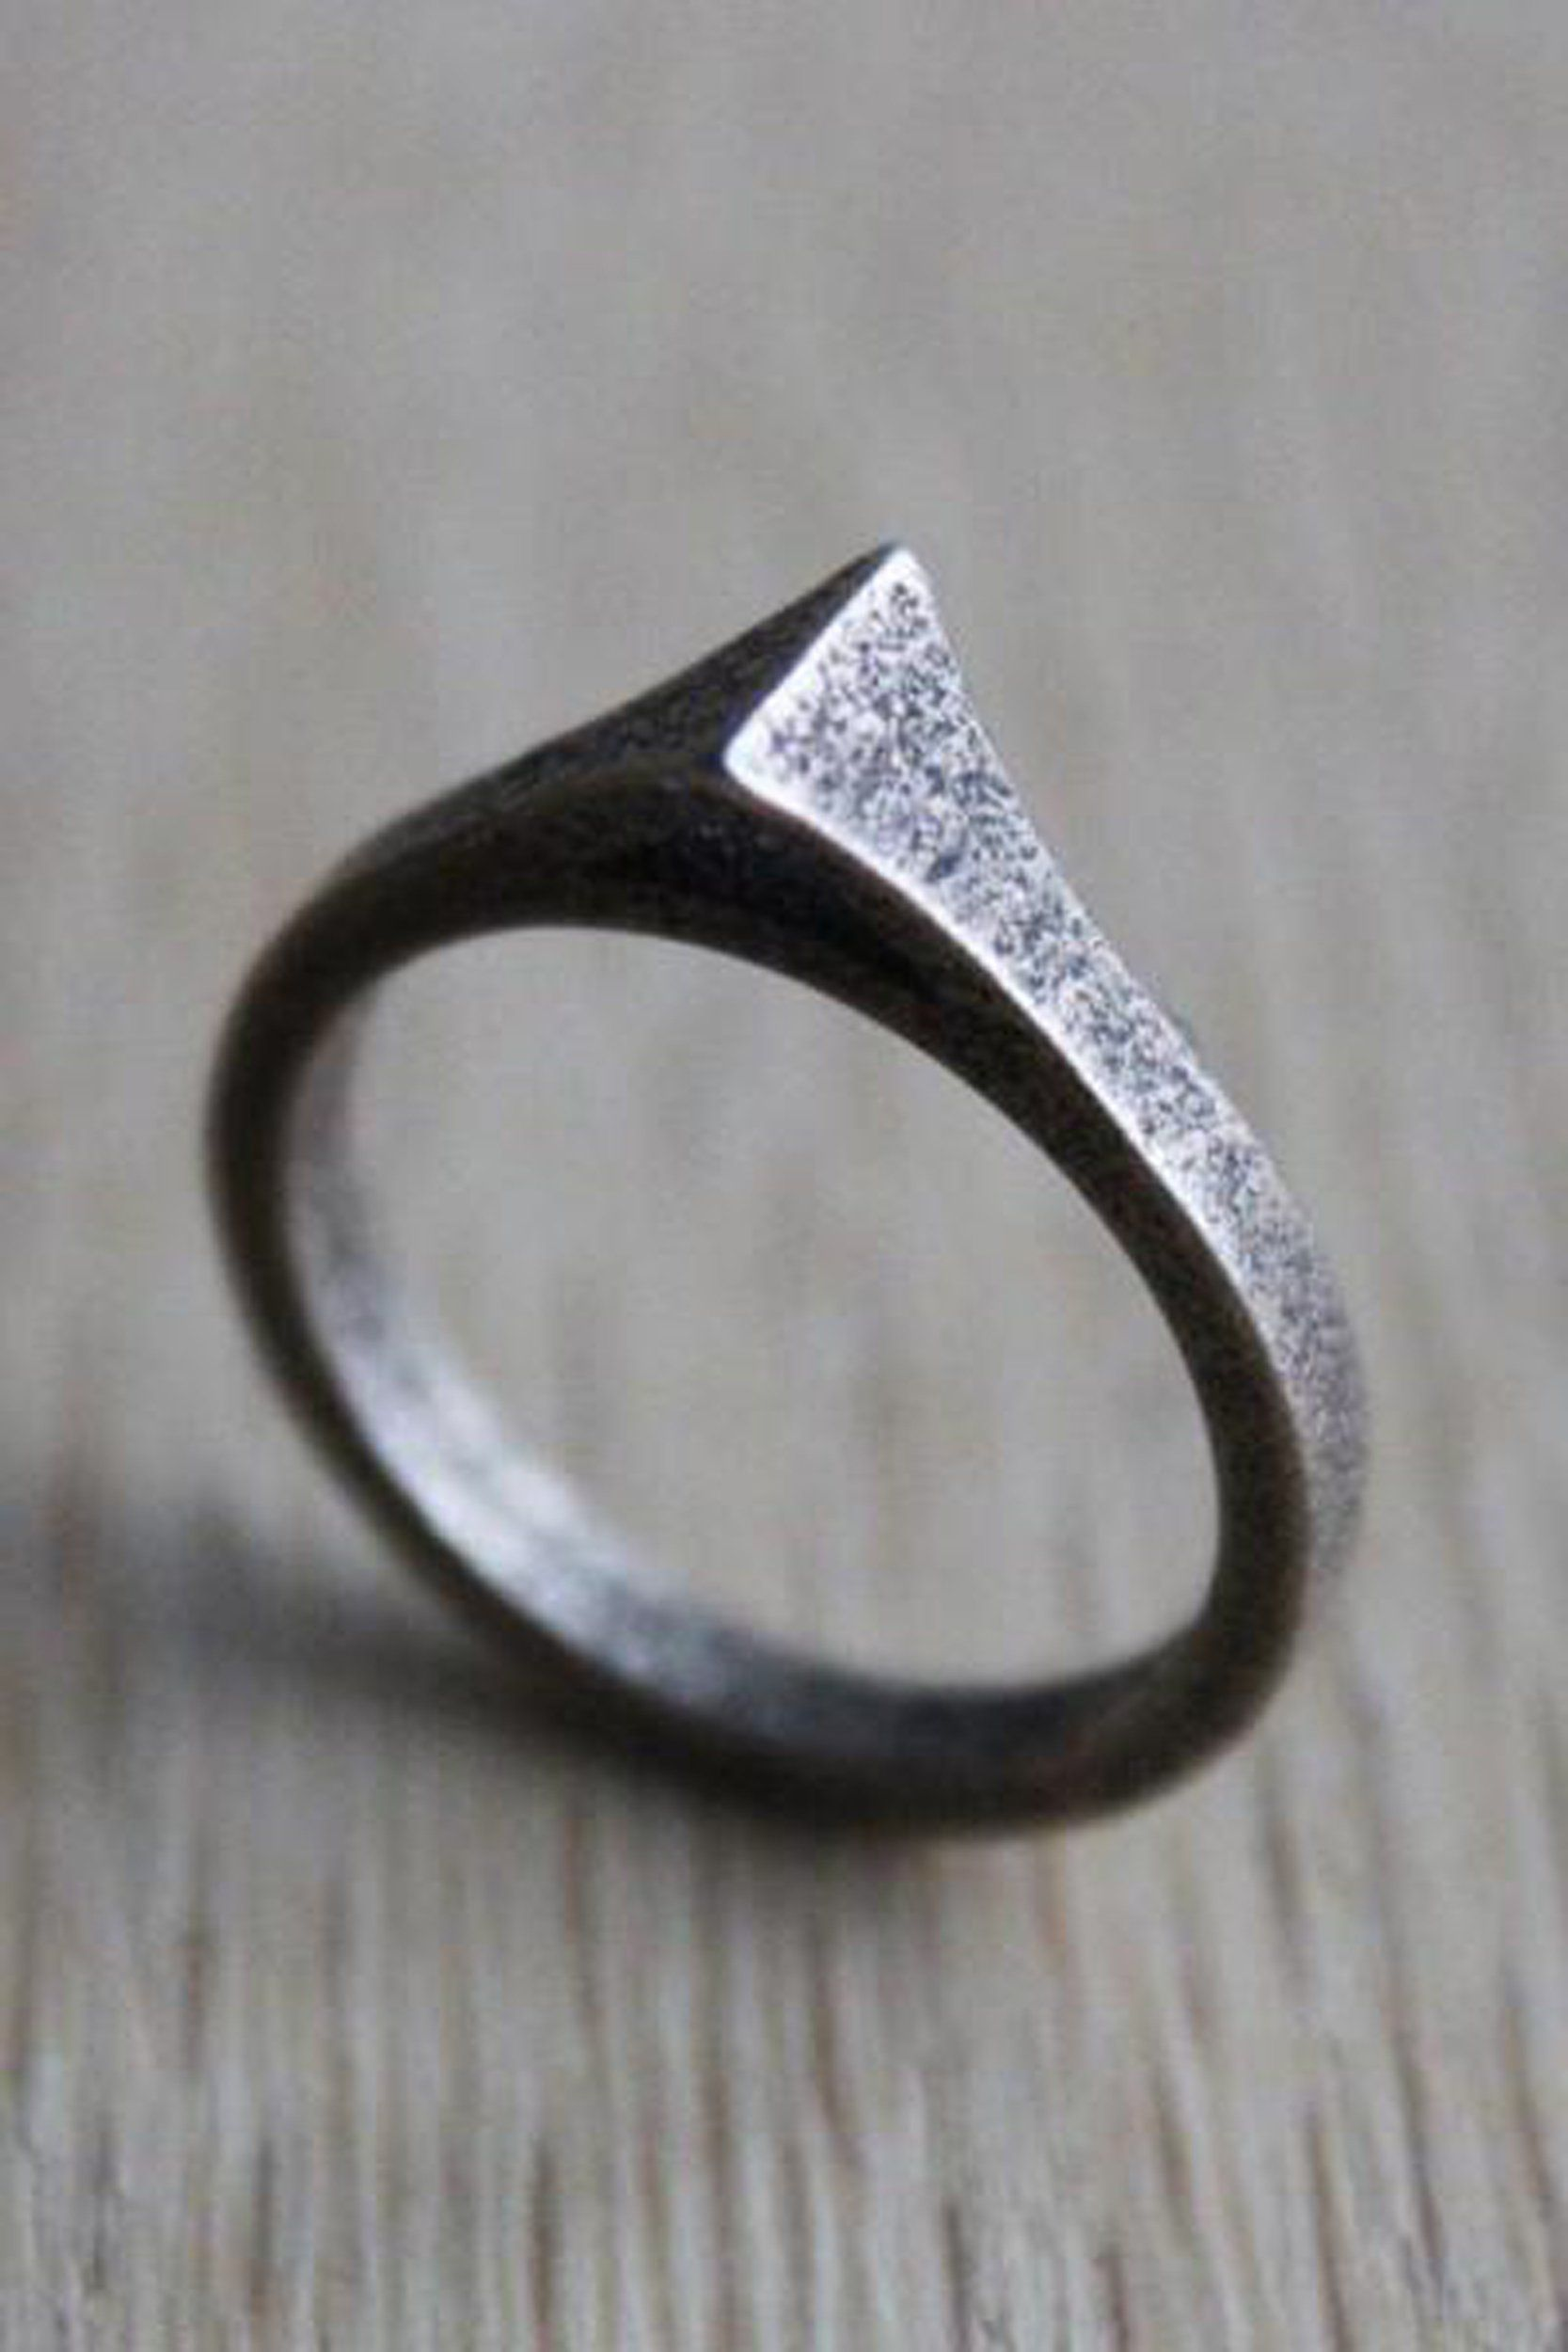 for made ring wedding tricolor or unique buy engagement mens band him hand bronze rings a silver men wave